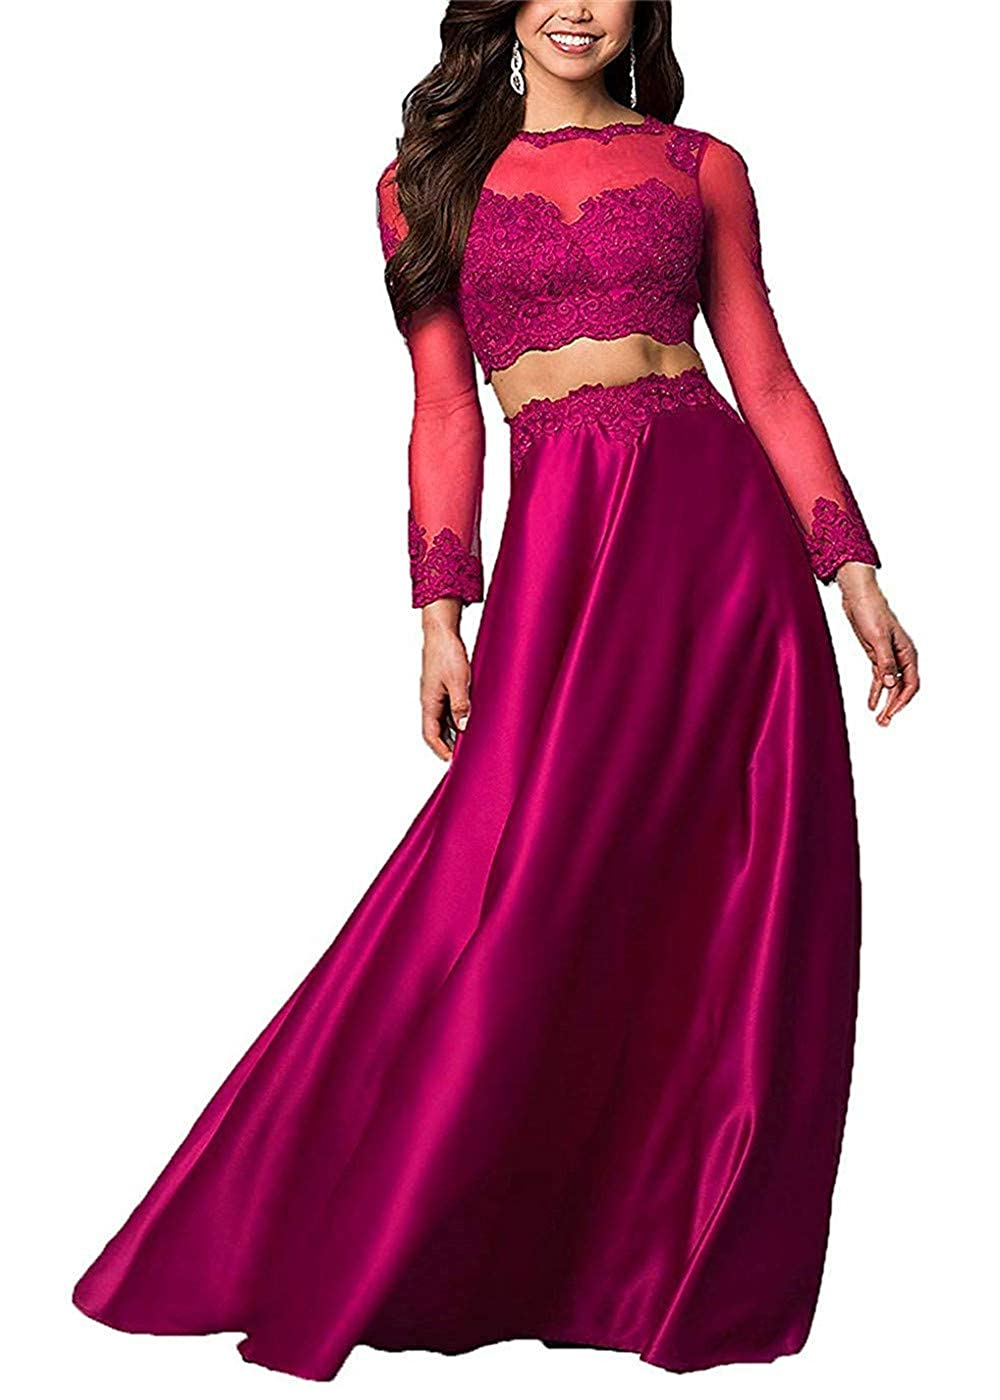 Fuchsia Sulidi Womens Lace Long Sleeves Two Piece Prom Dresses Long 2019 Formal Evening Gowns C240